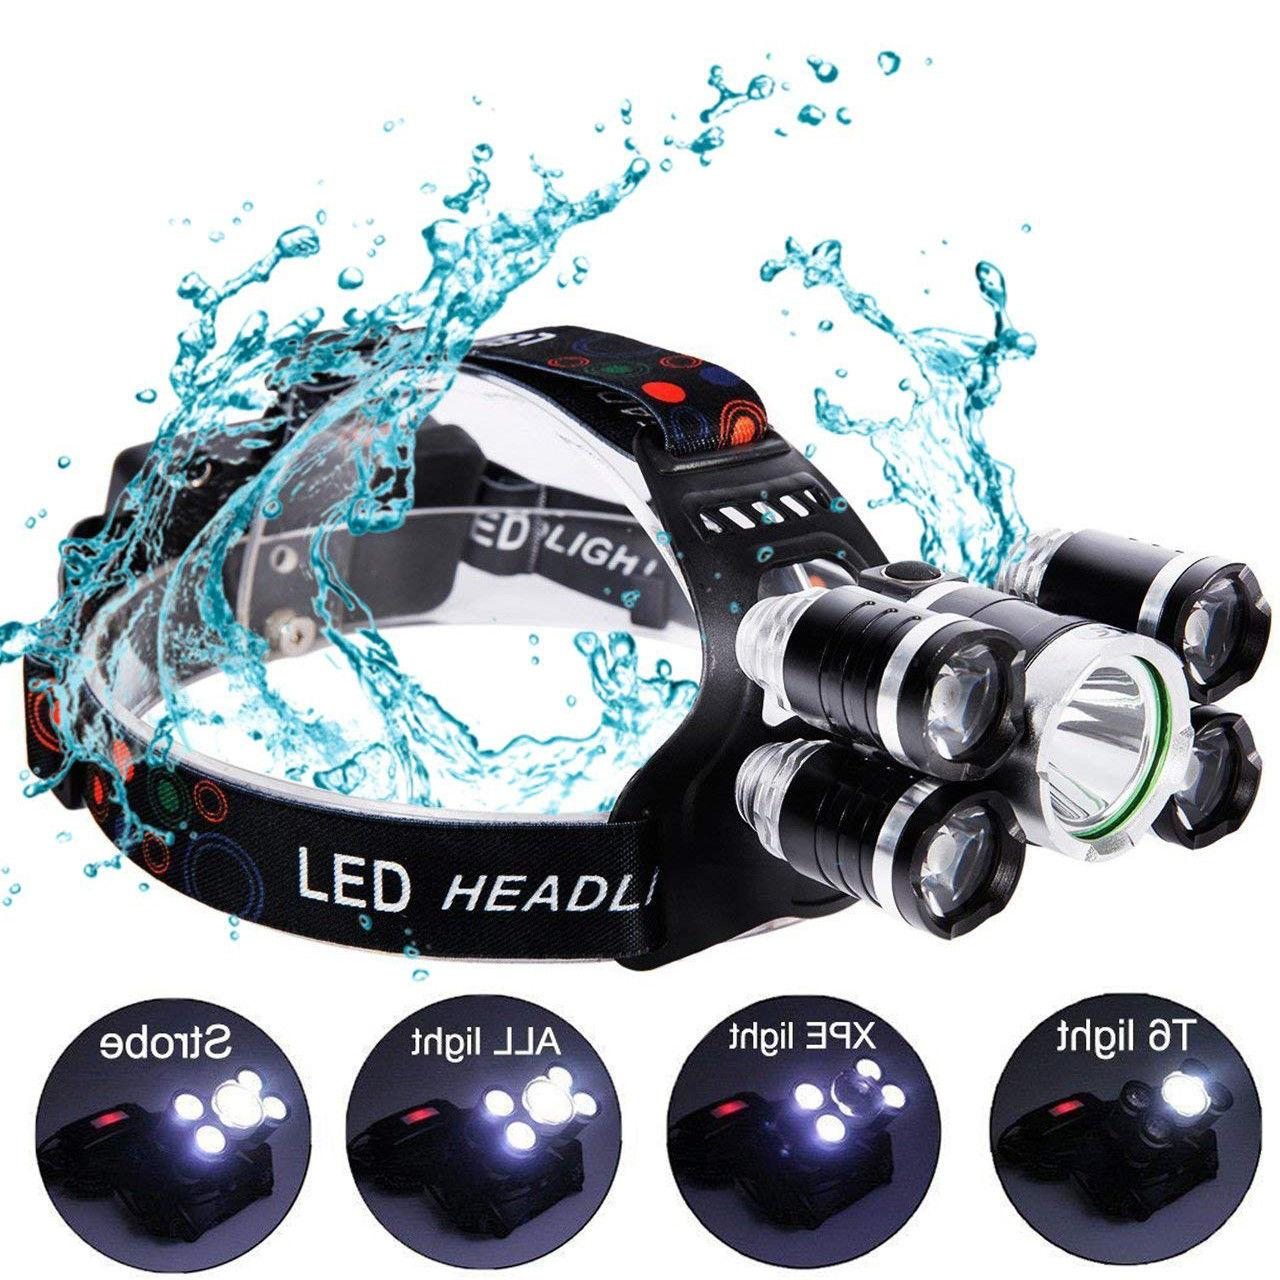 Super-bright 90000LM 5 XM-L T6 Headlight Flashlight Torch